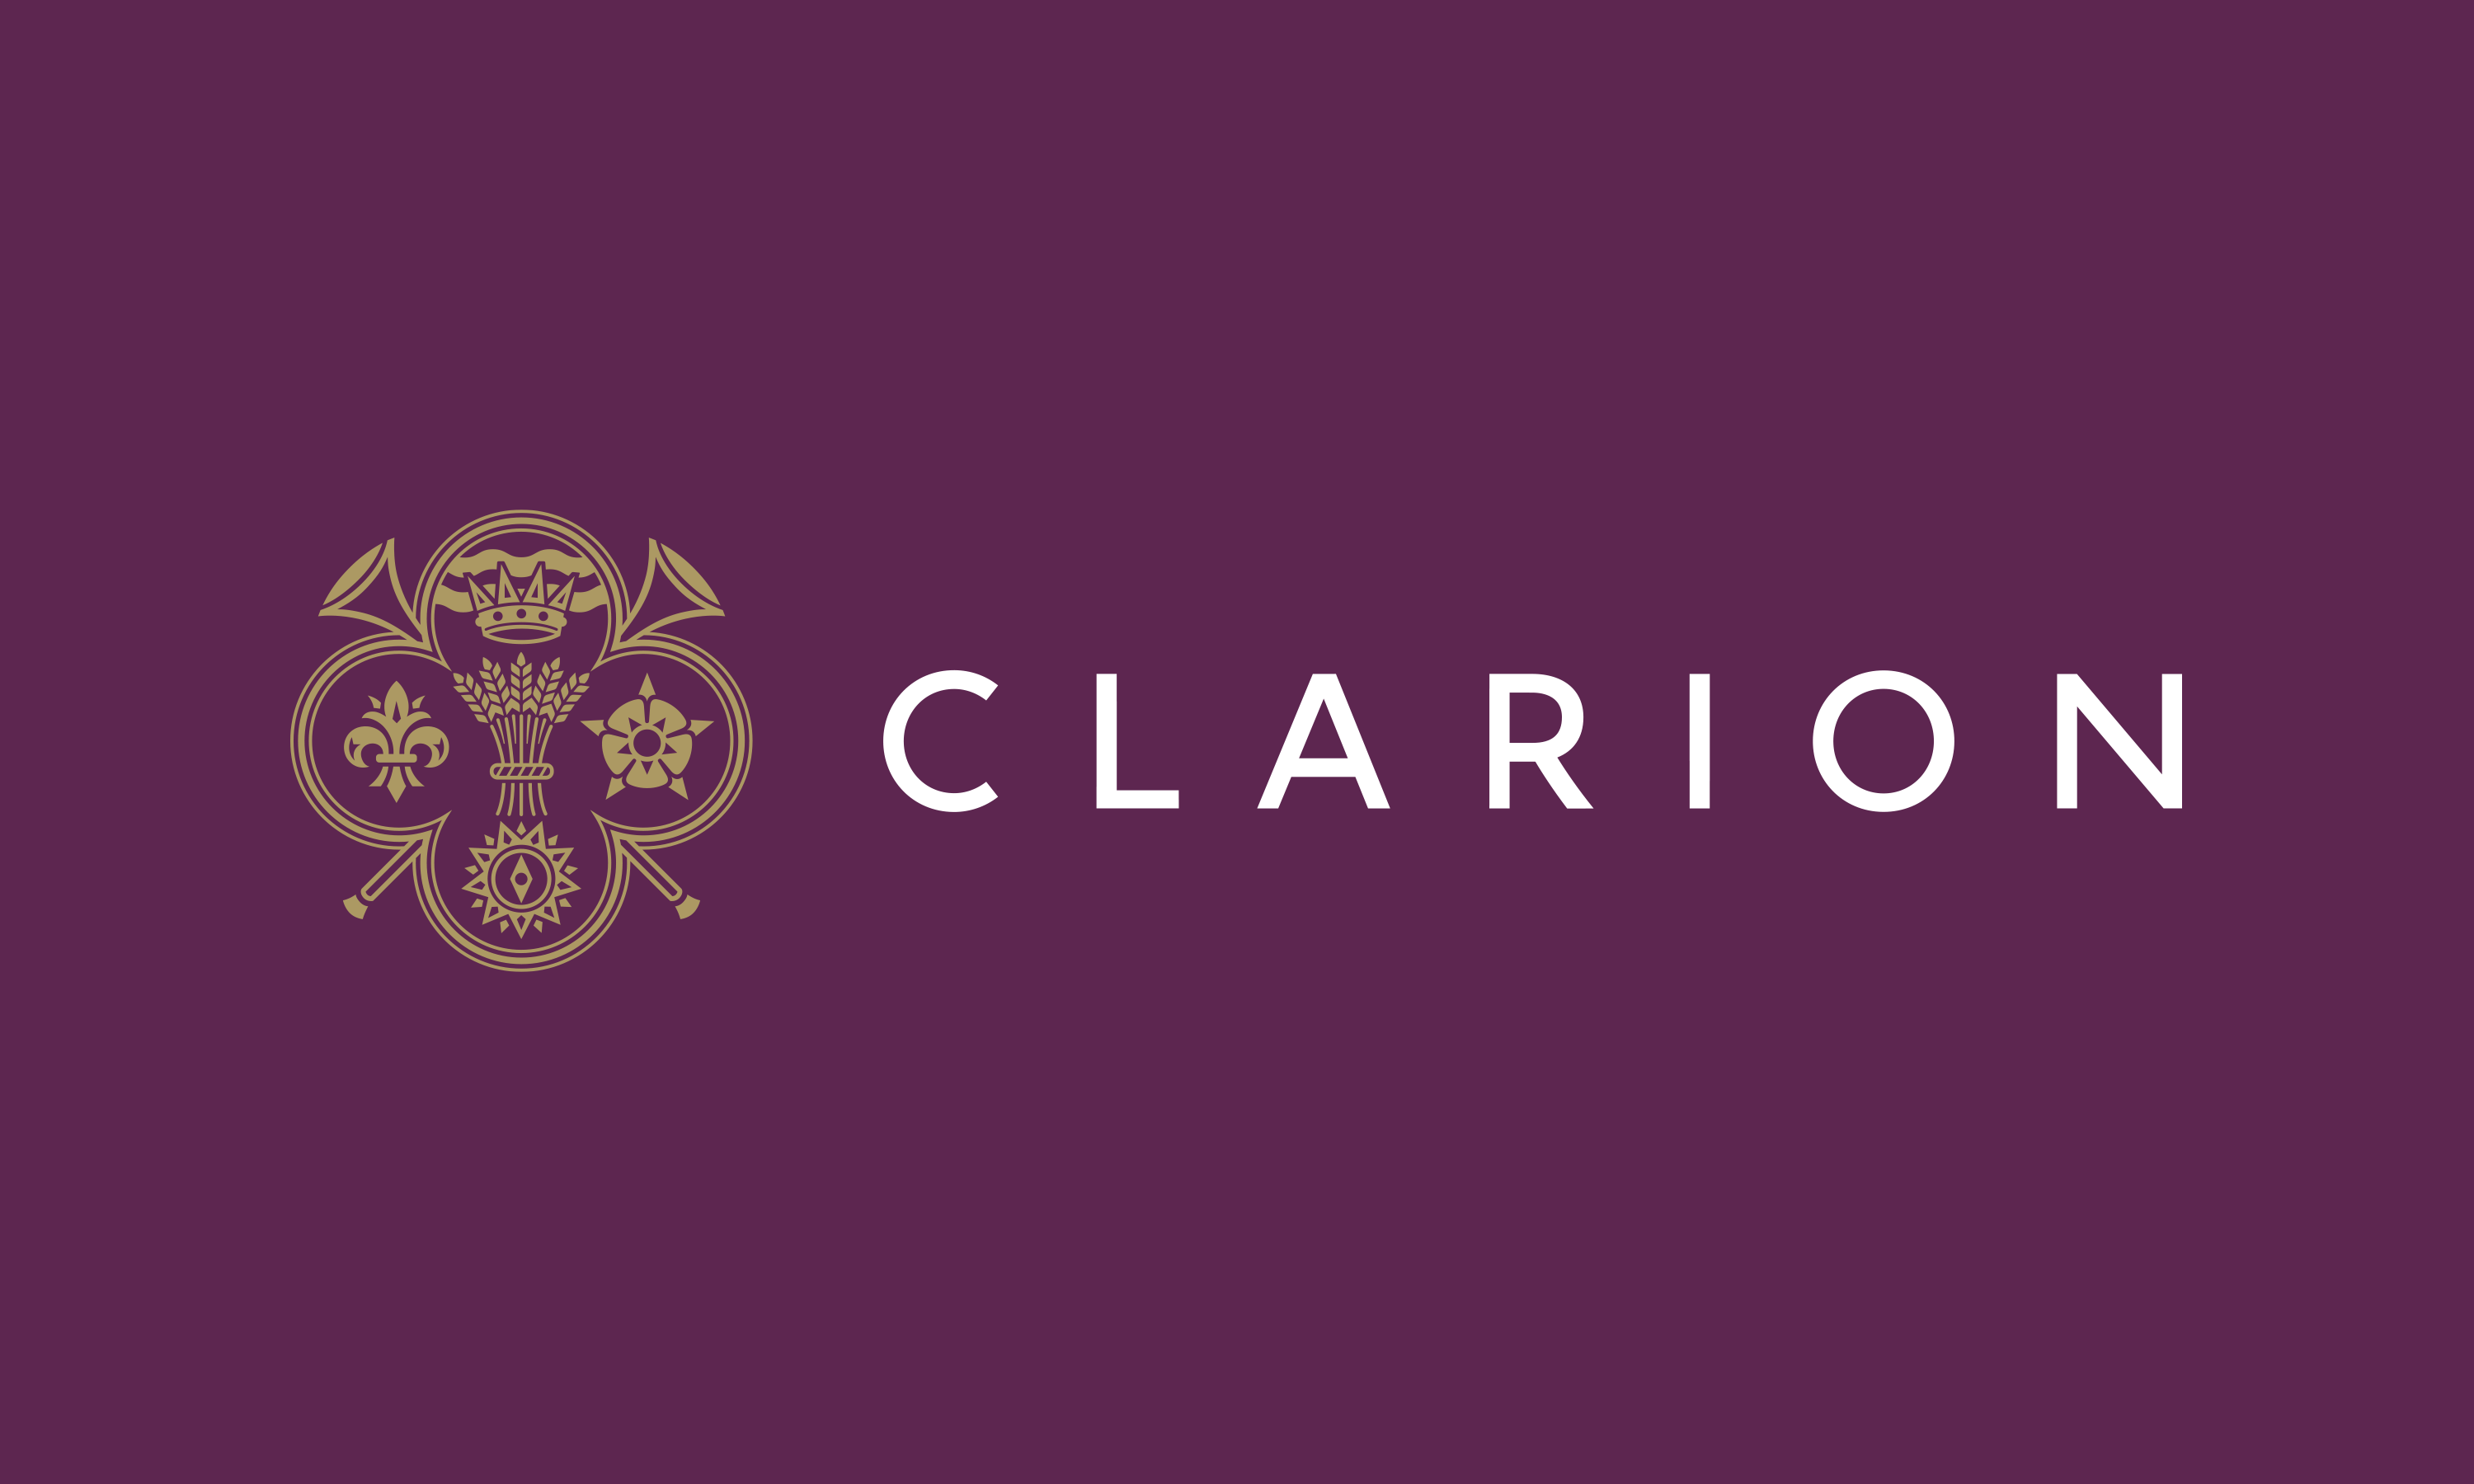 Branding by Neon - Clarion Wealth Management branding - Financial services branding - Clarion logo on royal purple designed by Dana Robertson